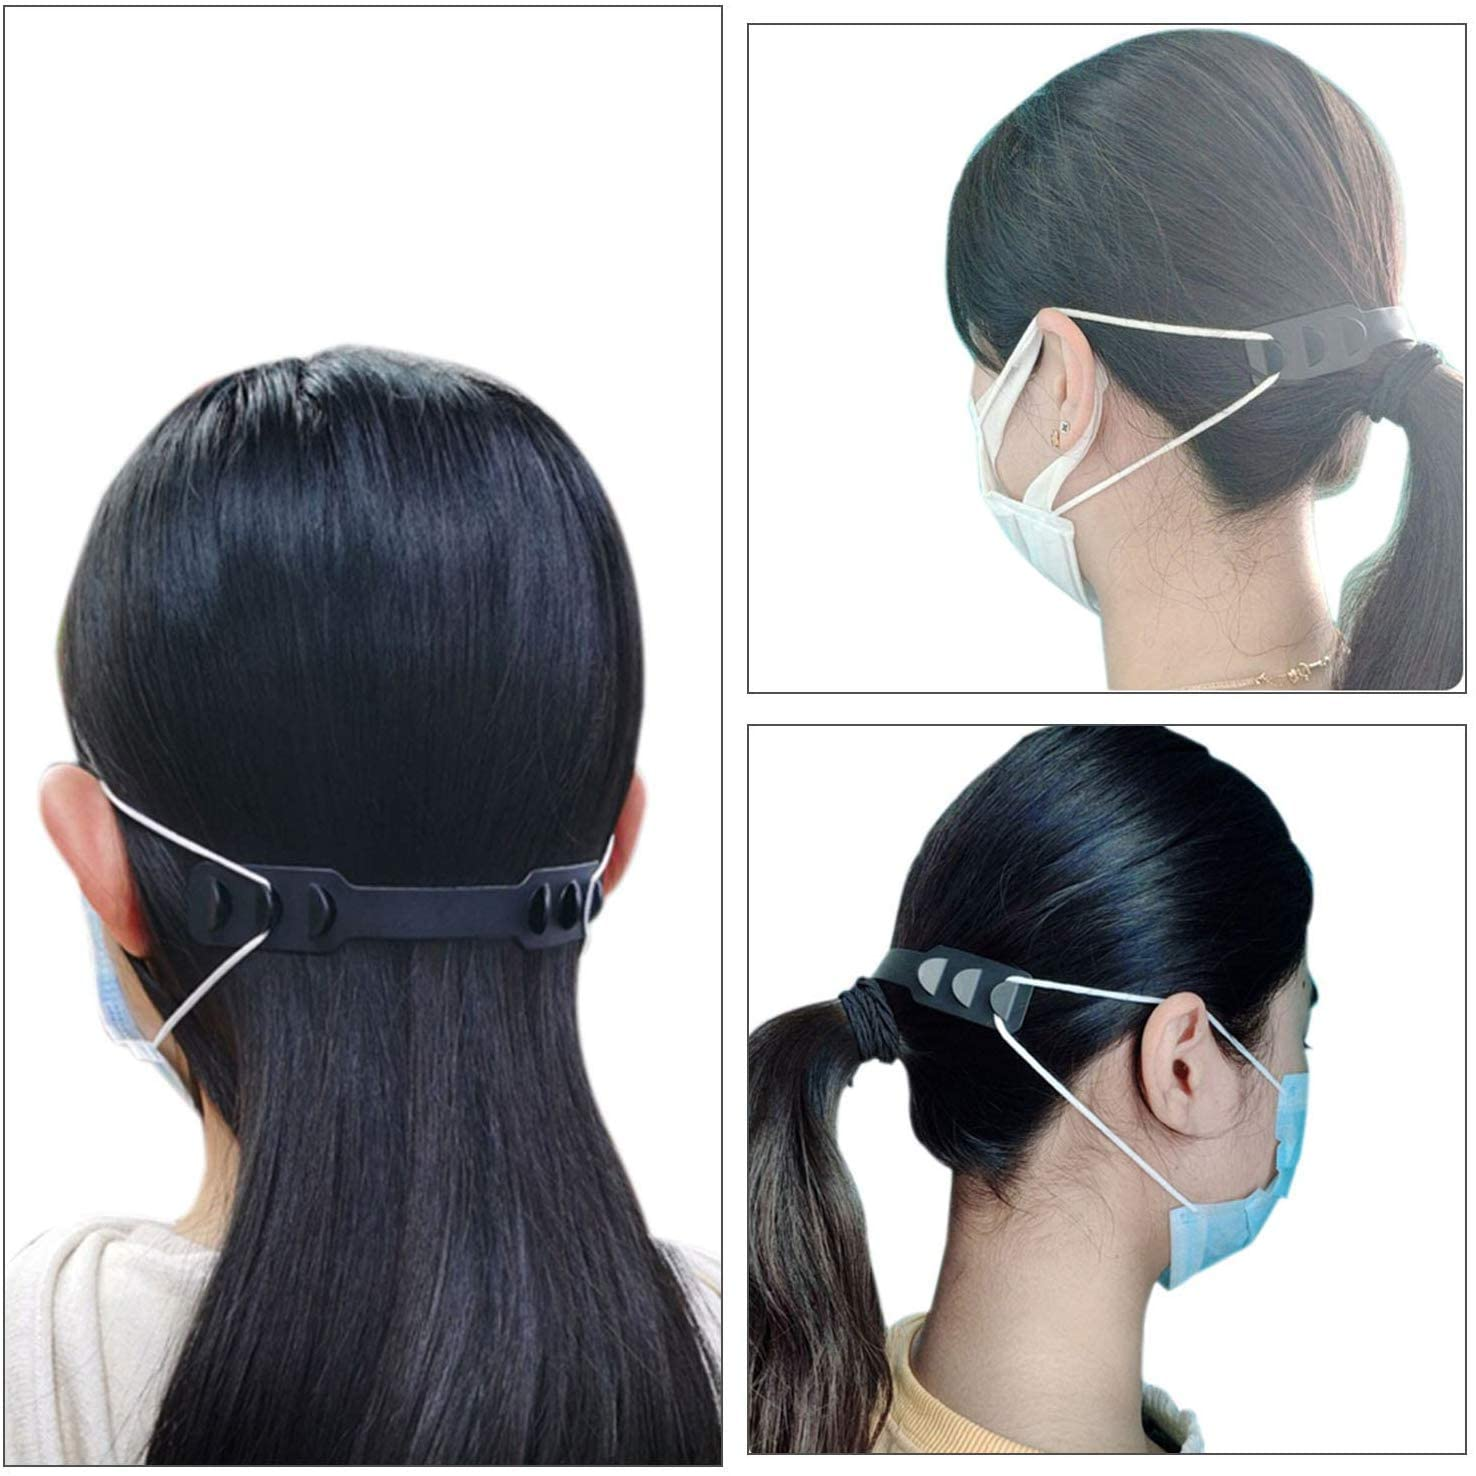 5 Pcs / Set Of Soft Mask Adjustable Ear Hook Buckle Child Adjustable Ear Pain Fixer Disposable Mask Anti-flu Anti-virus Mask